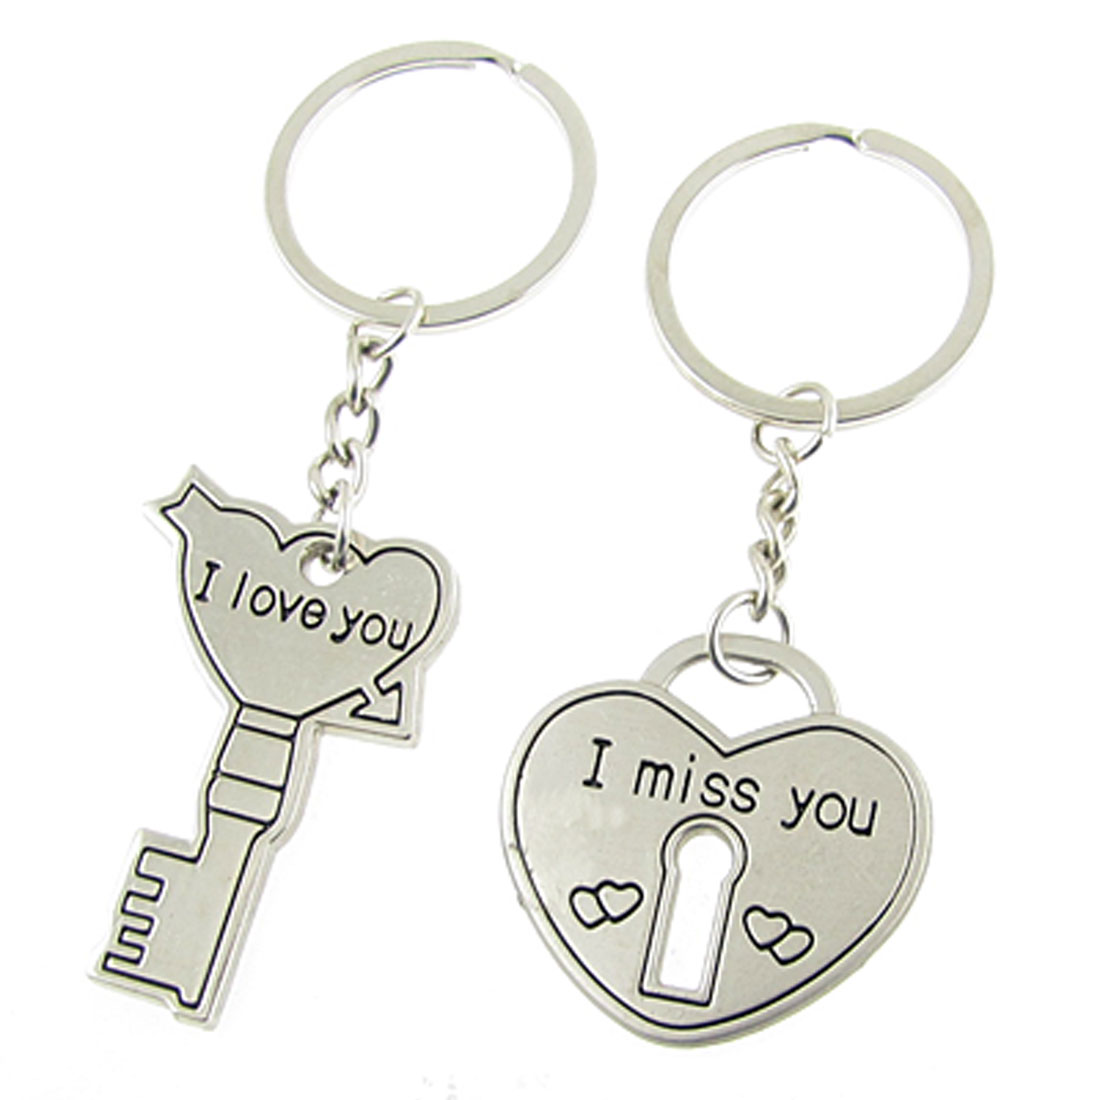 Lovers Heart Key Shaped Pendant Metal Flat Split Key Rings 2 Pcs